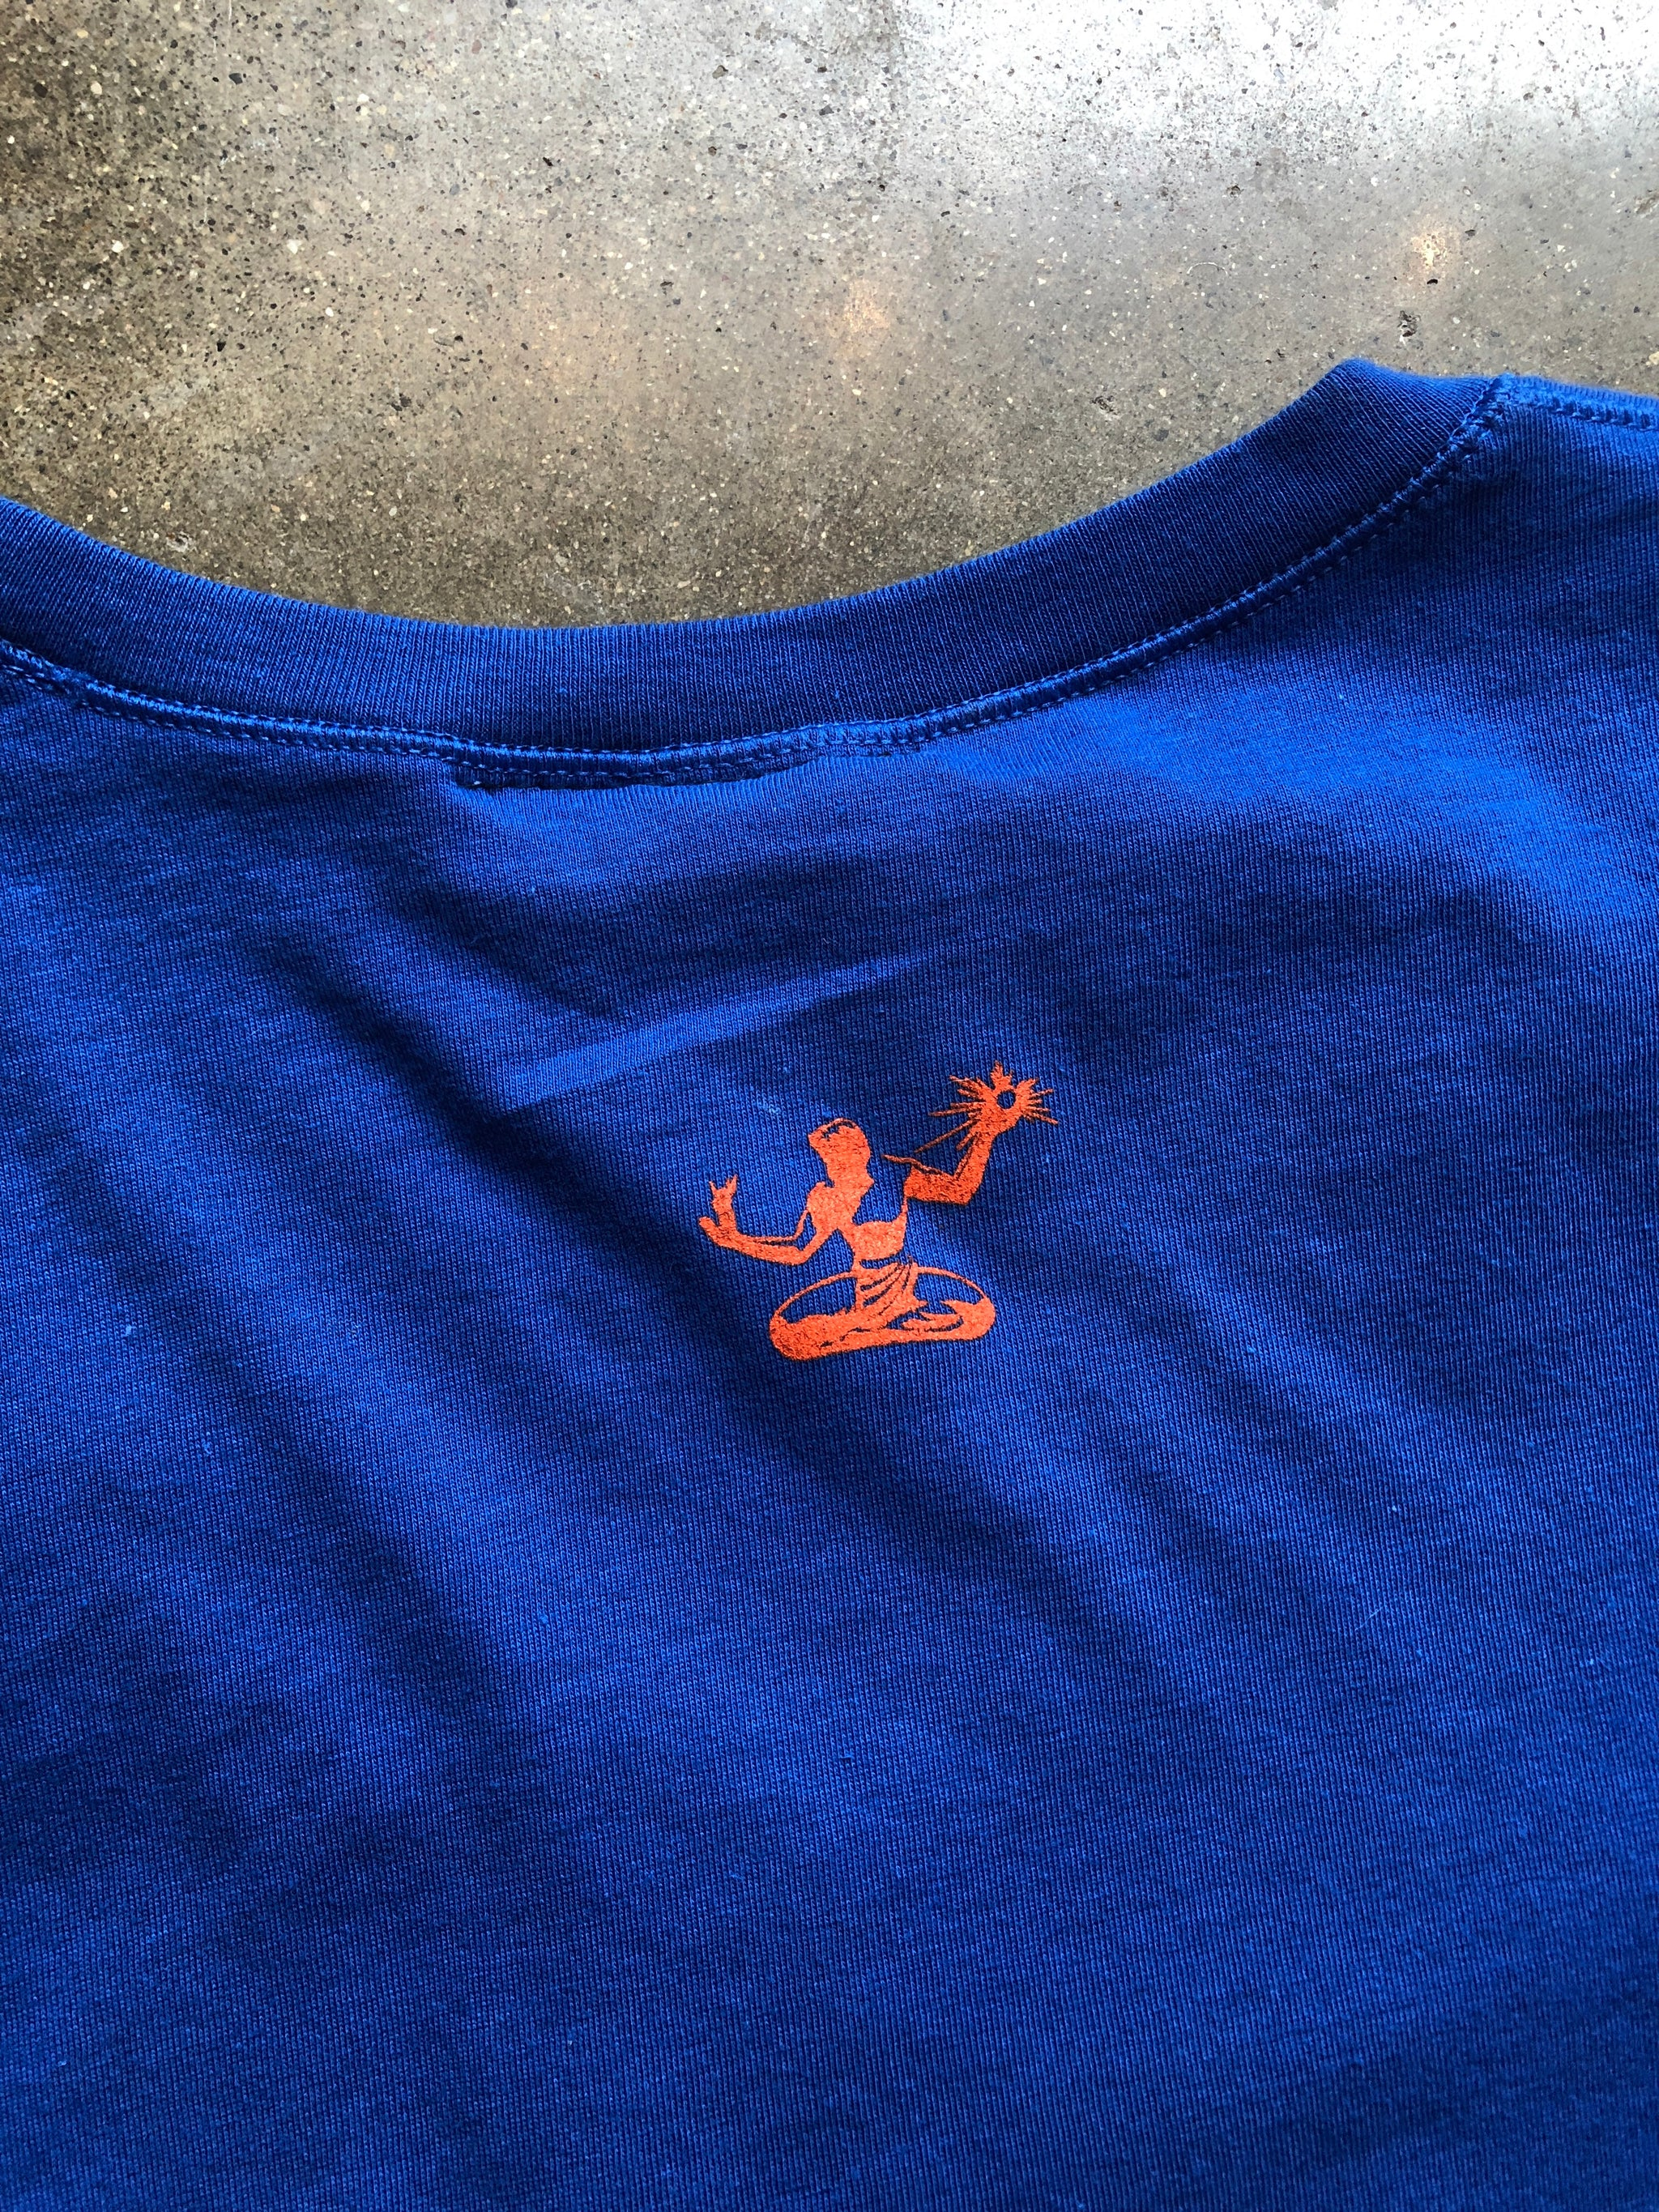 Motor City Stars Tee / Orange + Blue / Unisex - Pure Detroit